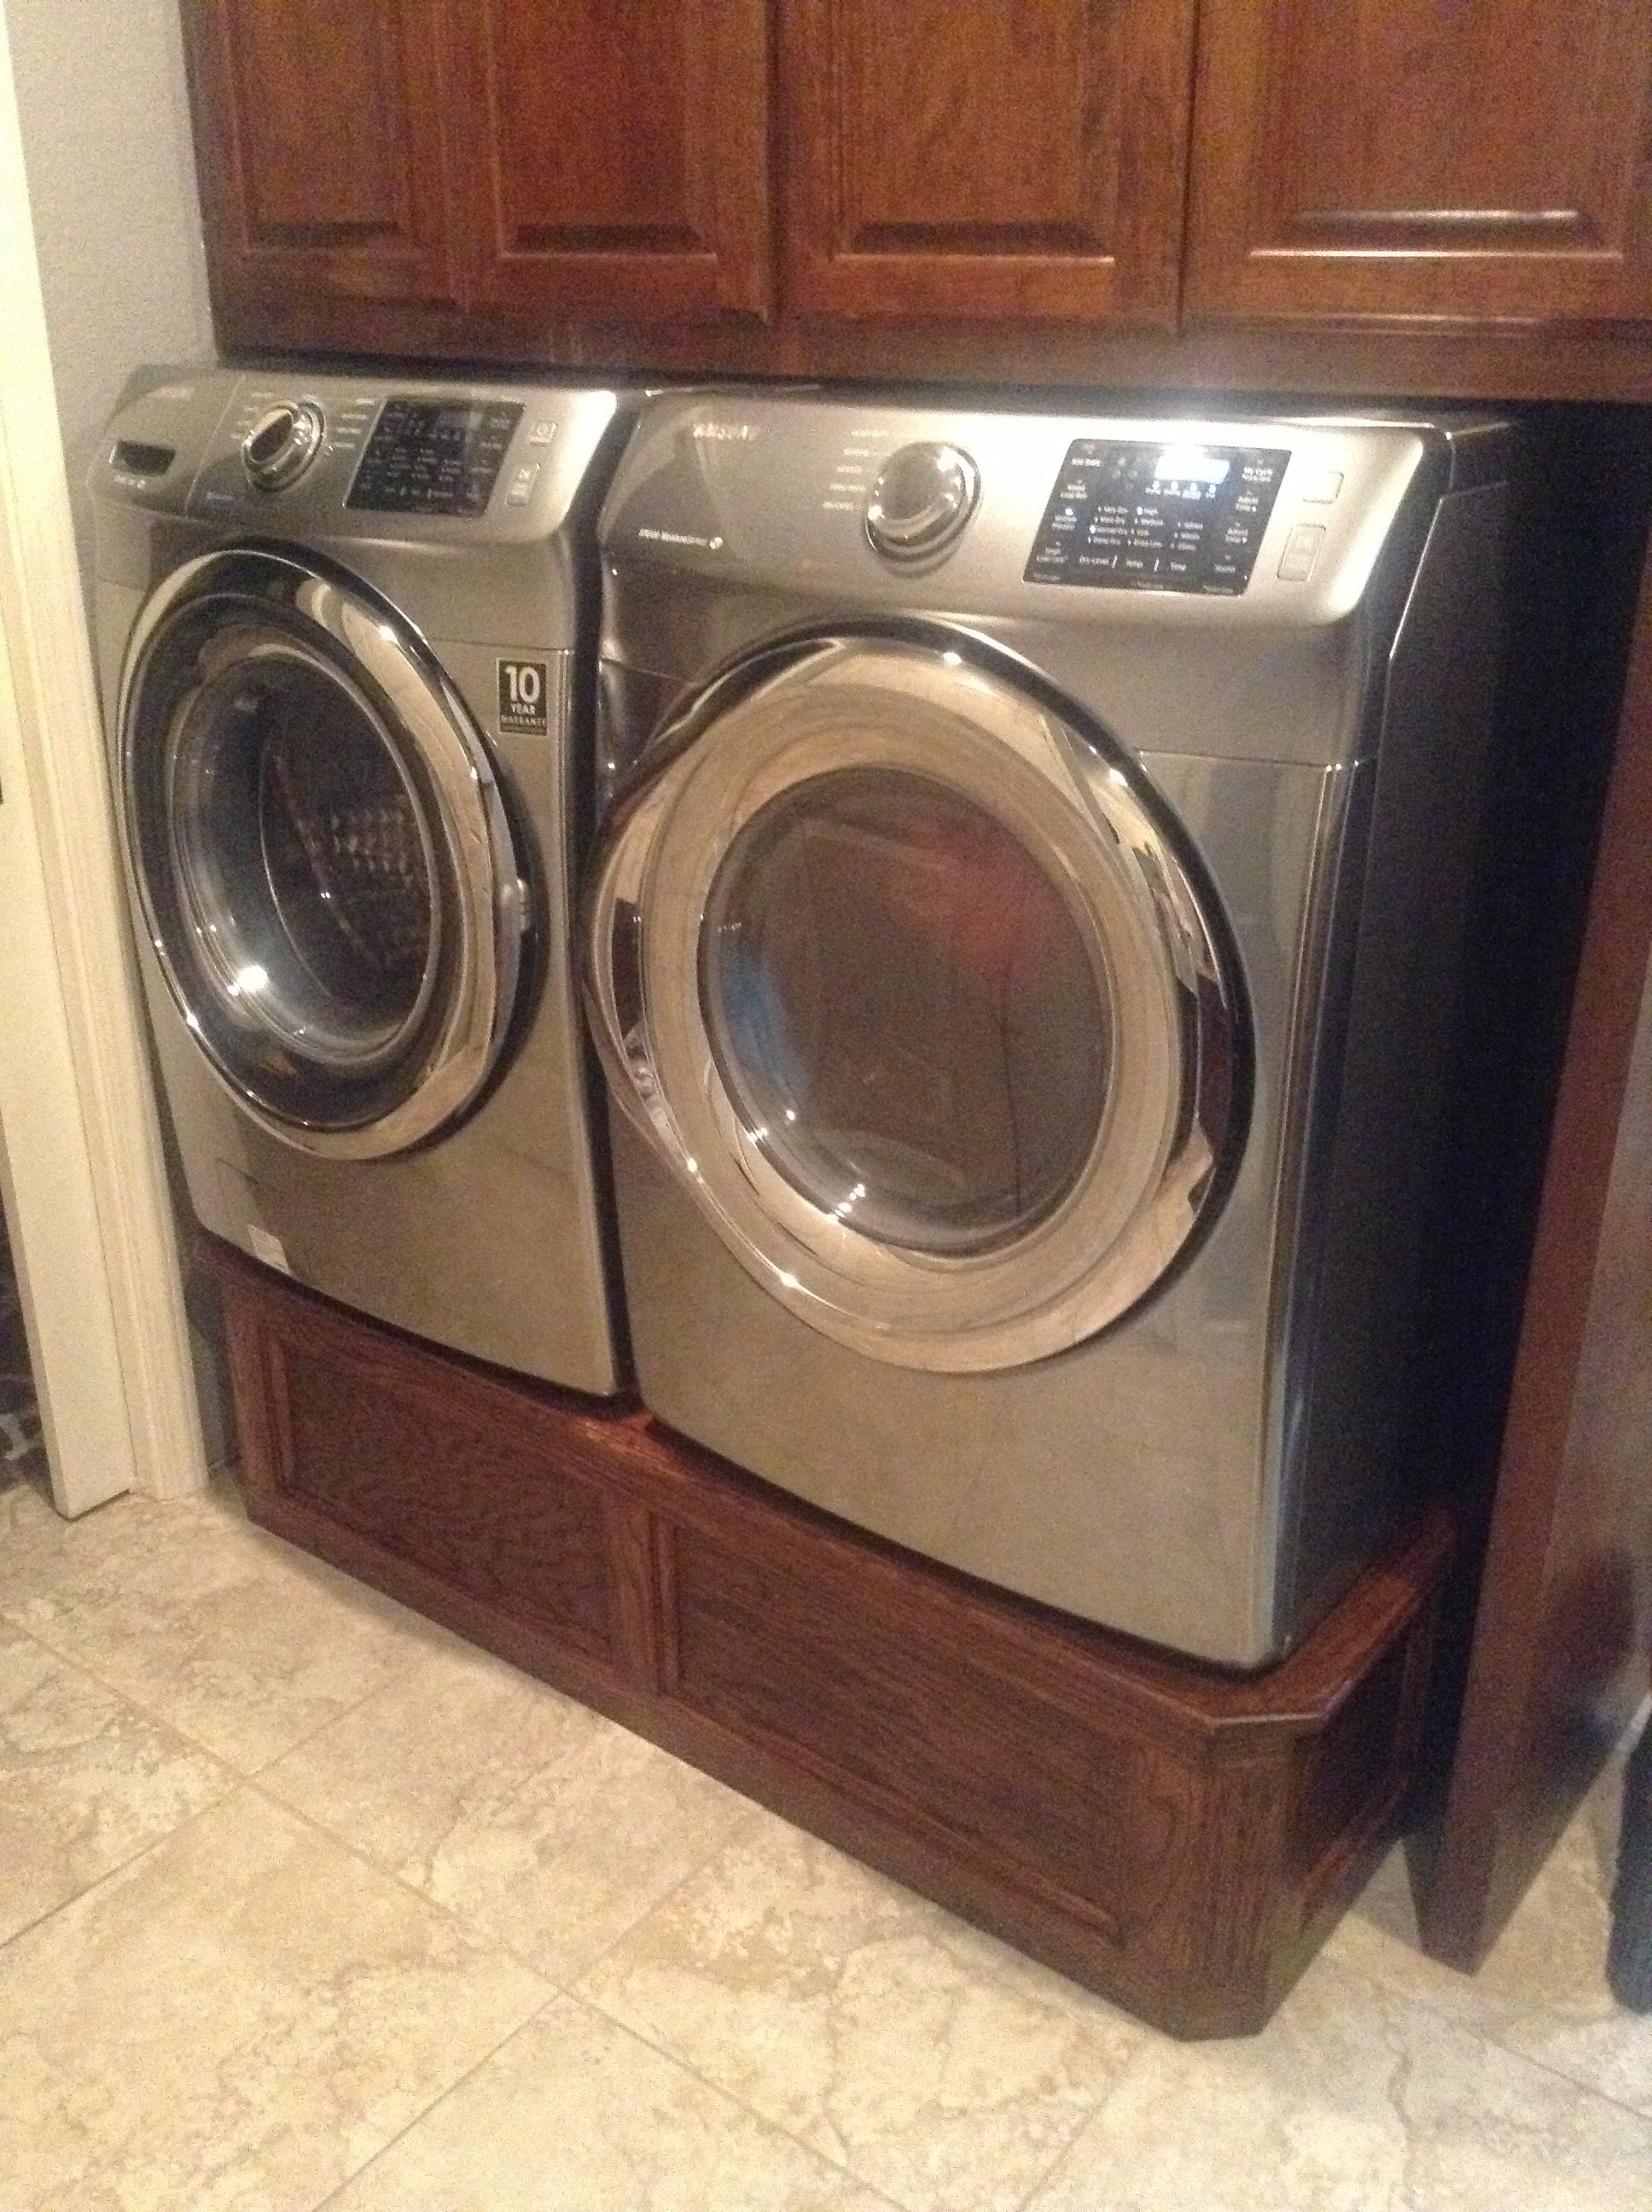 idea and this i pedestal pedestals pin front to dryer like raise the washer loader